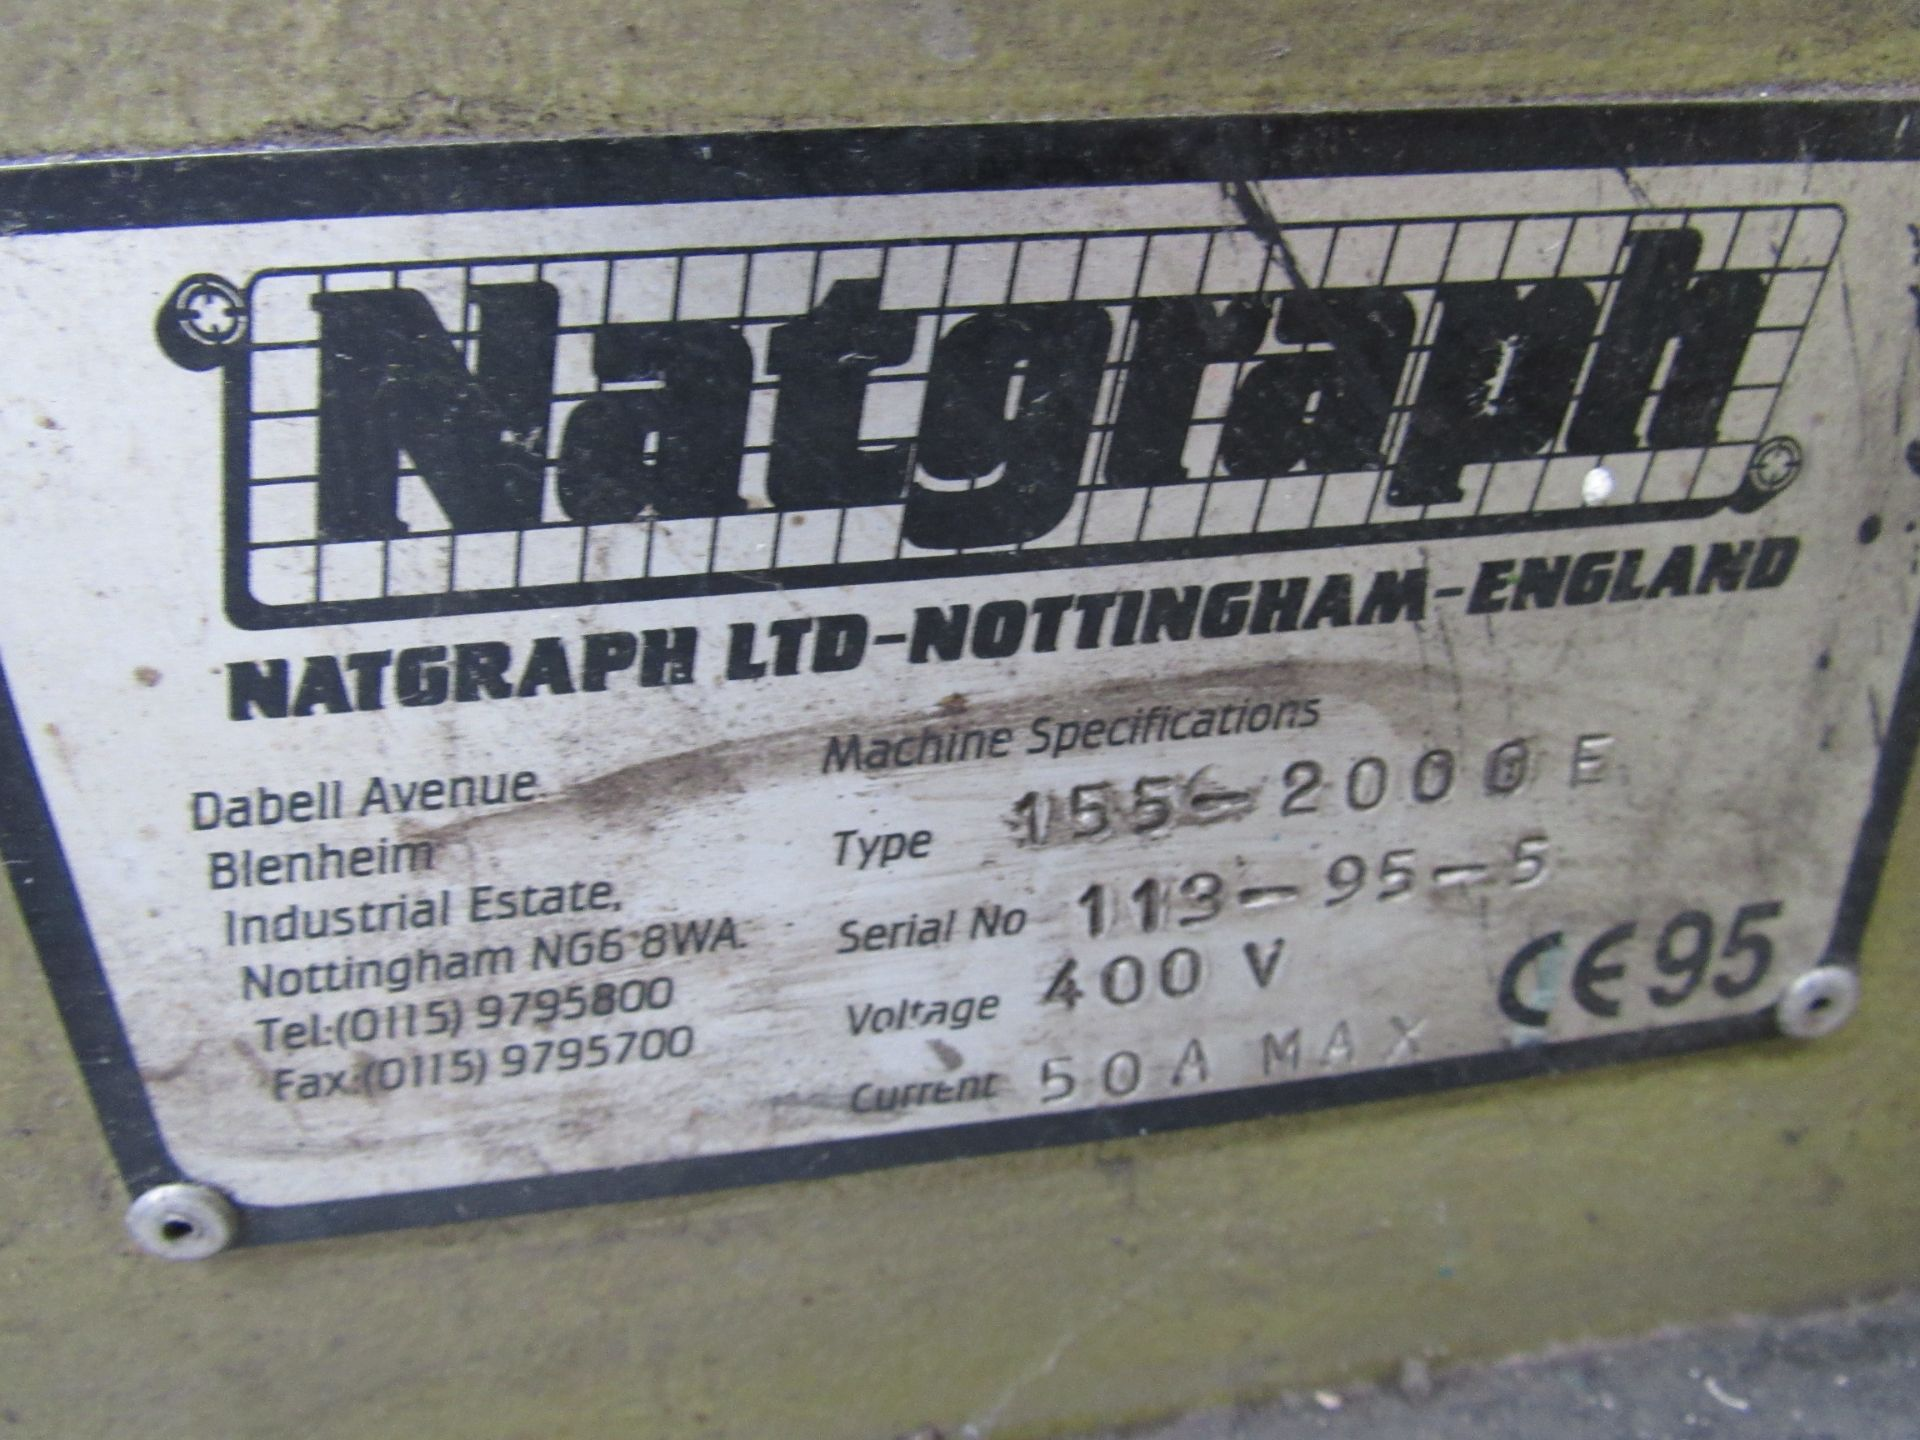 Sias Print Serifast 117.180 Screen Printer Serial Number 88745 with Natgraph 155-2000E UV Dryer Line - Image 8 of 10